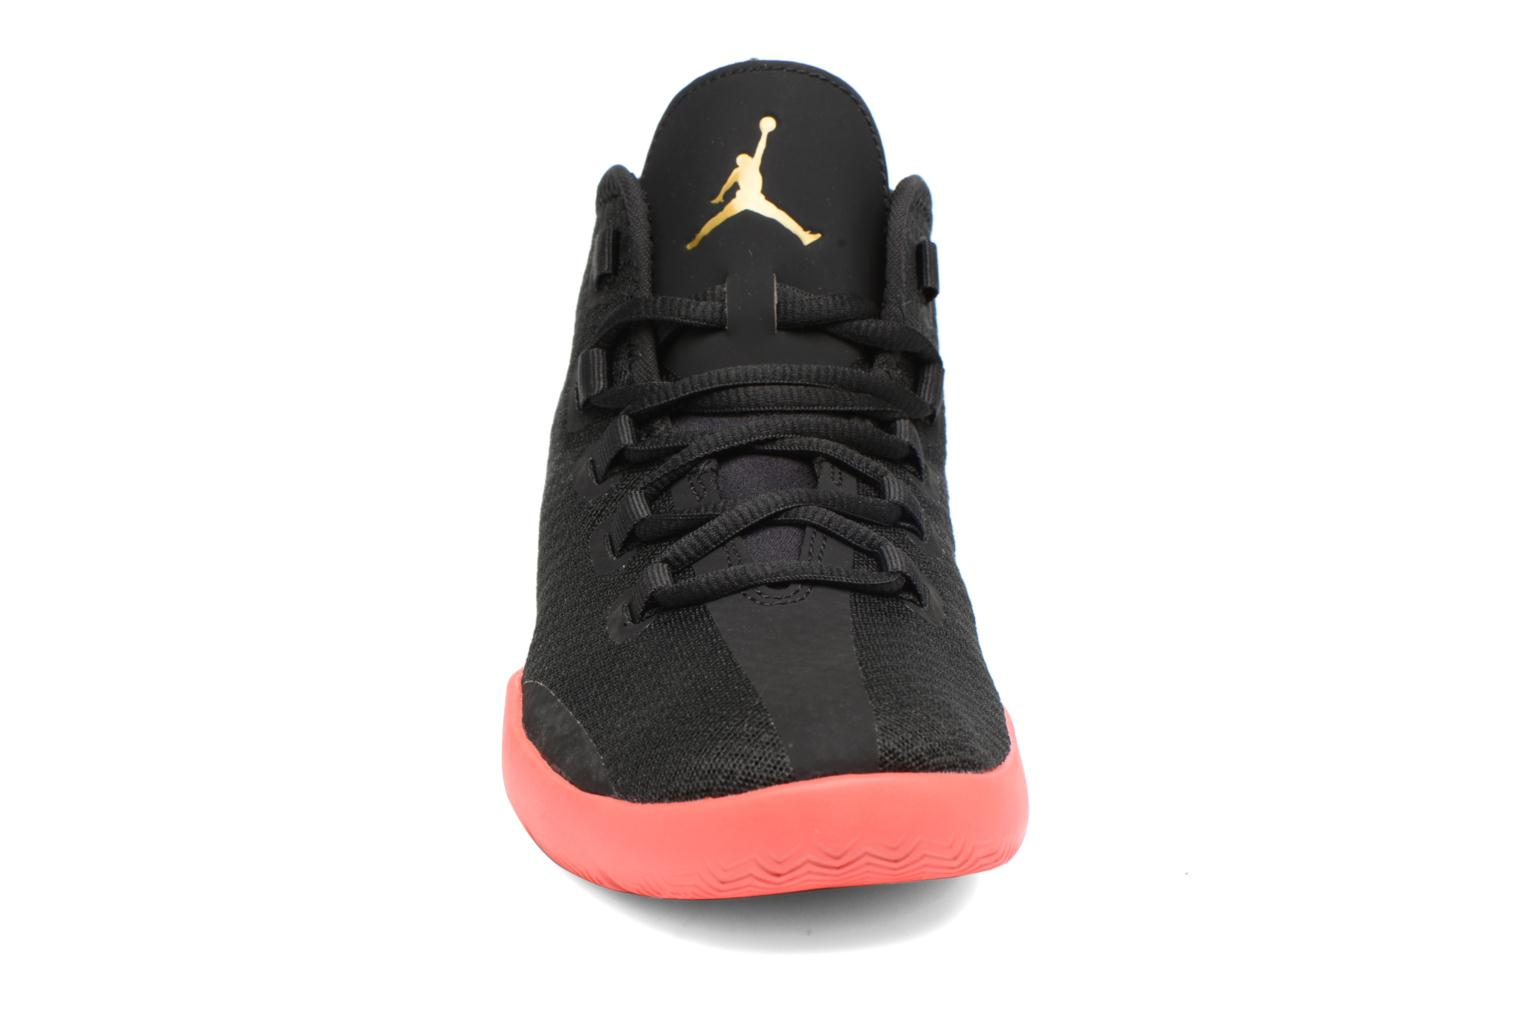 Jordan Reveal Bg Black/Mtlc Gold Coin-Infrrd 23